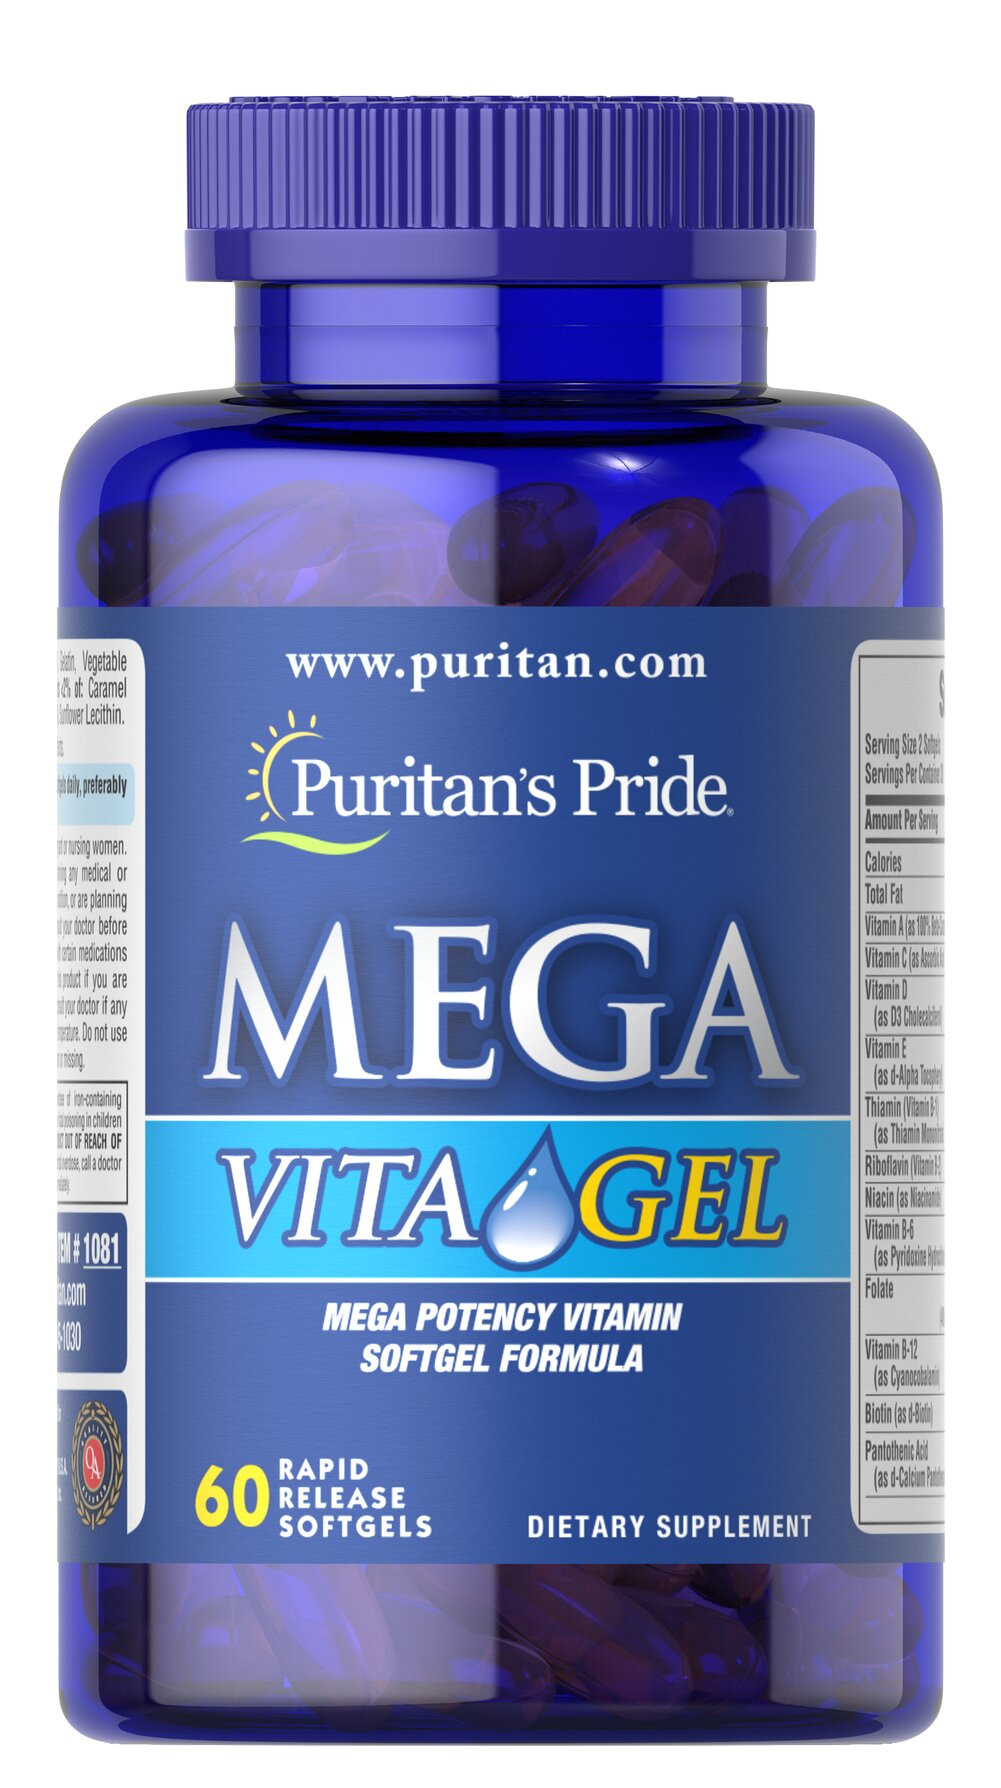 Mega Vita Gel Multivitamins <p>Mega Vital Gel is an exclusive vitamin and mineral formula. Each softgel contains 36 important nutrients without sugar, starch, artificial flavors or preservatives!  Adults can take two softgels daily with a meal.</p> 60 Softgels  $12.99